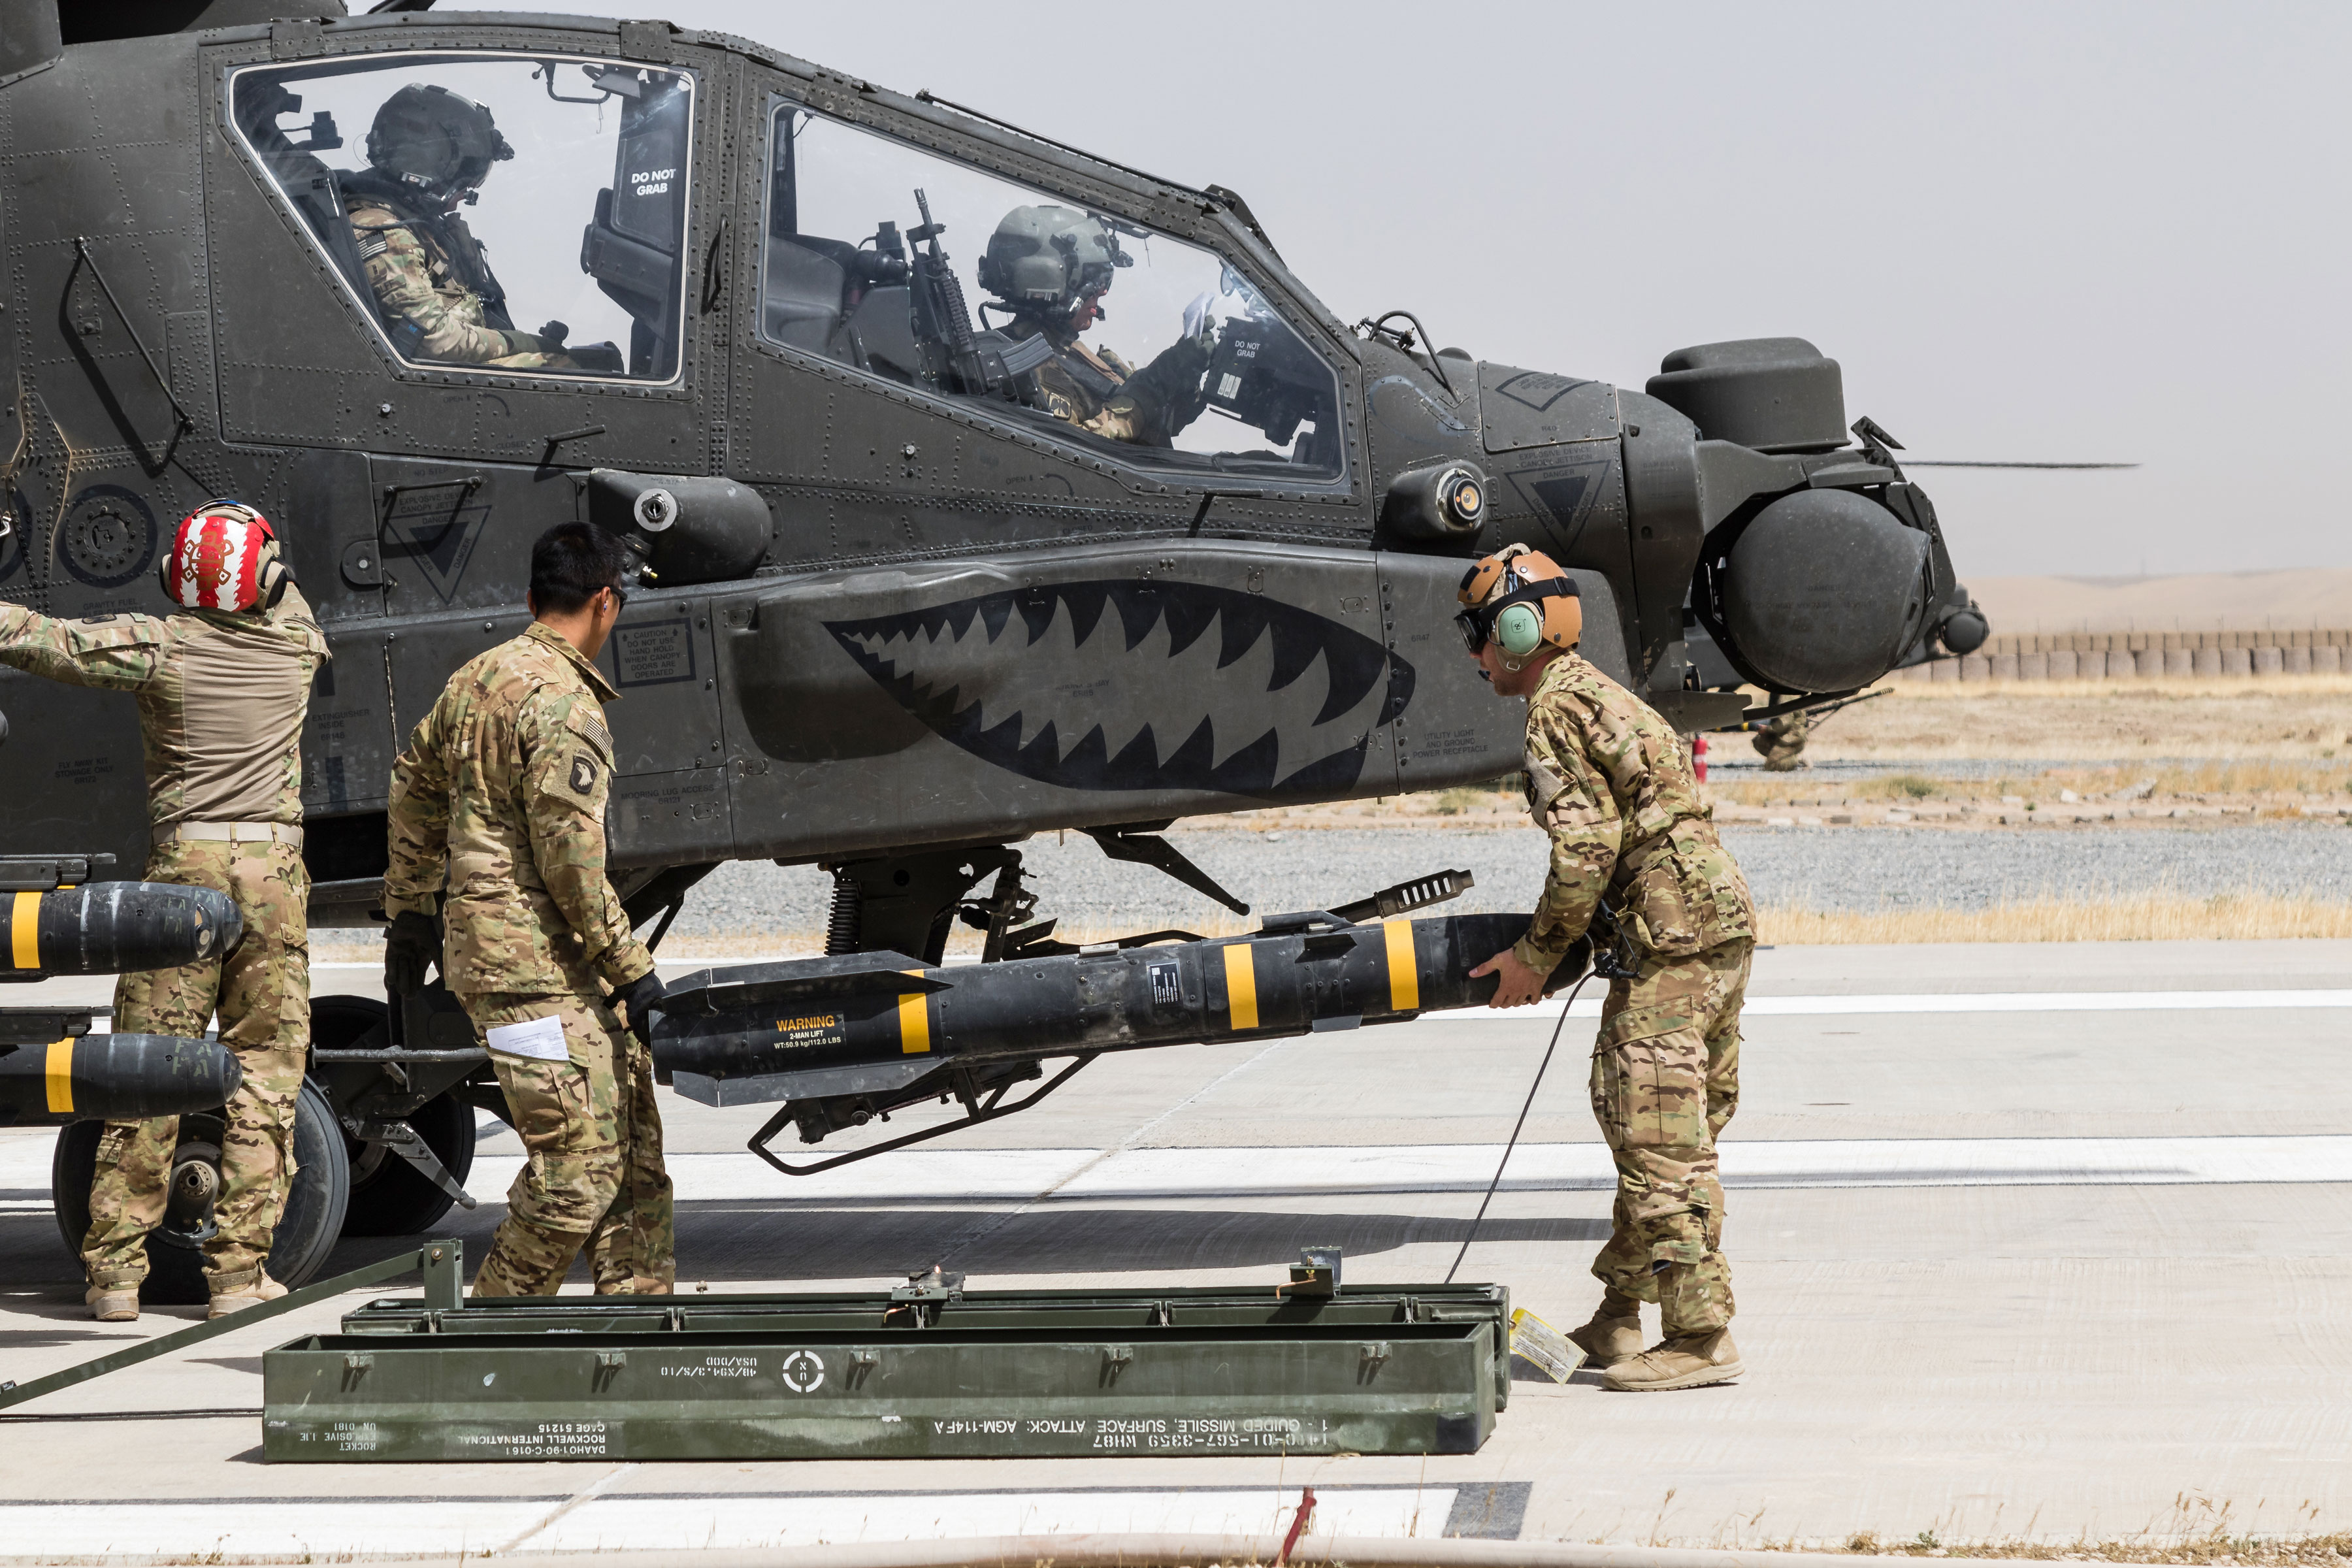 Soldiers assigned to Task Force Griffin, 16th Combat Aviation Brigade (CAB), 7th Infantry Division load an AGM-114 HELLFIRE missile on an AH-64E Apache helicopter in Kunduz, Afghanistan, in May. This support for U.S. Forces Afghanistan is possible, in turn, because of long-standing, ongoing relationships between government and the private sector in research and development. Cultivating and maintaining such ties helps Army acquisition ensure that its development and acquisition strategies will produce the best, most up-to-date and effective equipment. (U.S. Army photo by Capt. Brian Harris, 16th CAB)